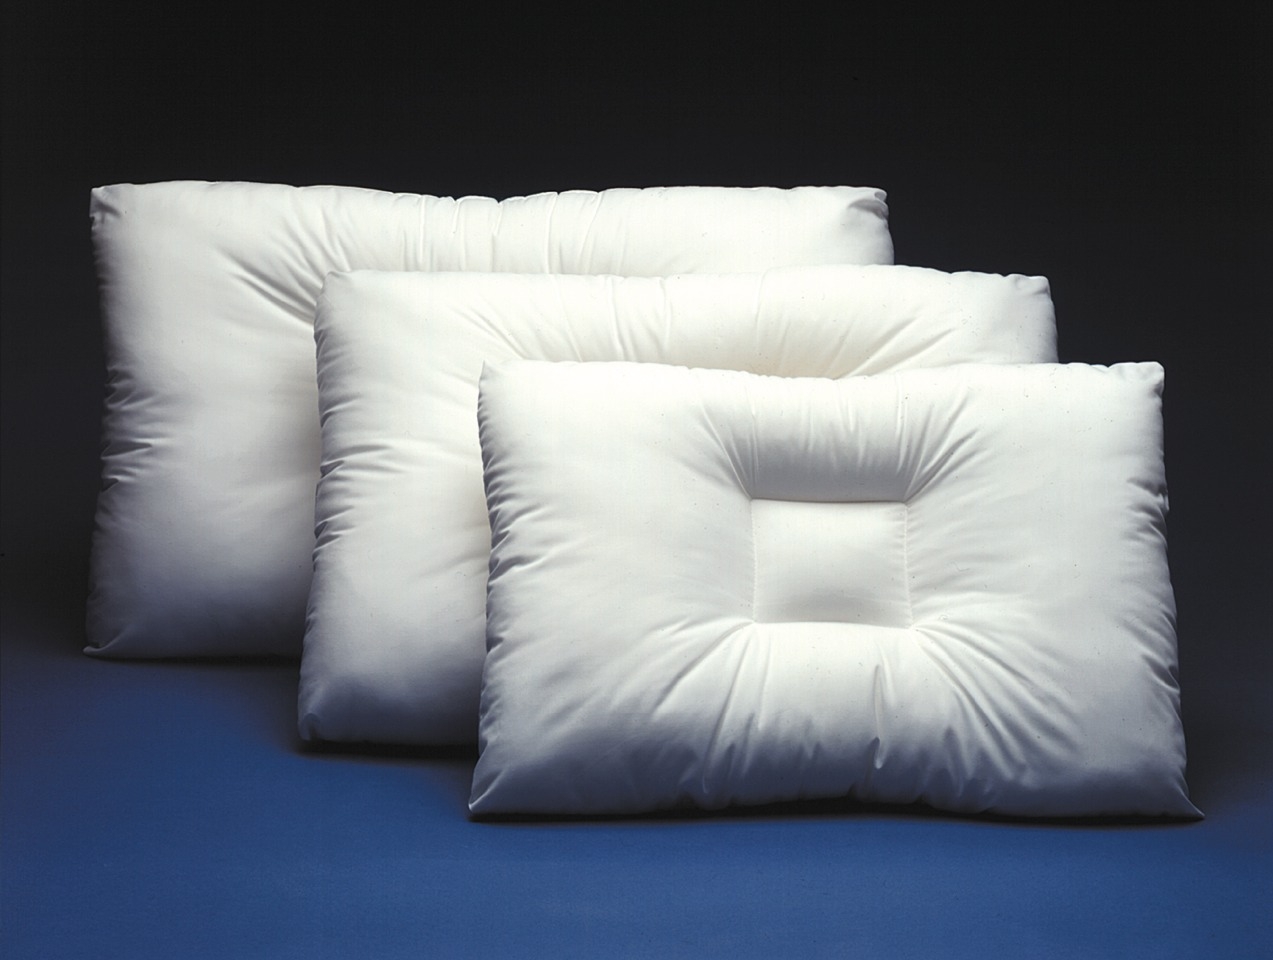 Check your pillow dust mite buildup in pillows can increase allergic